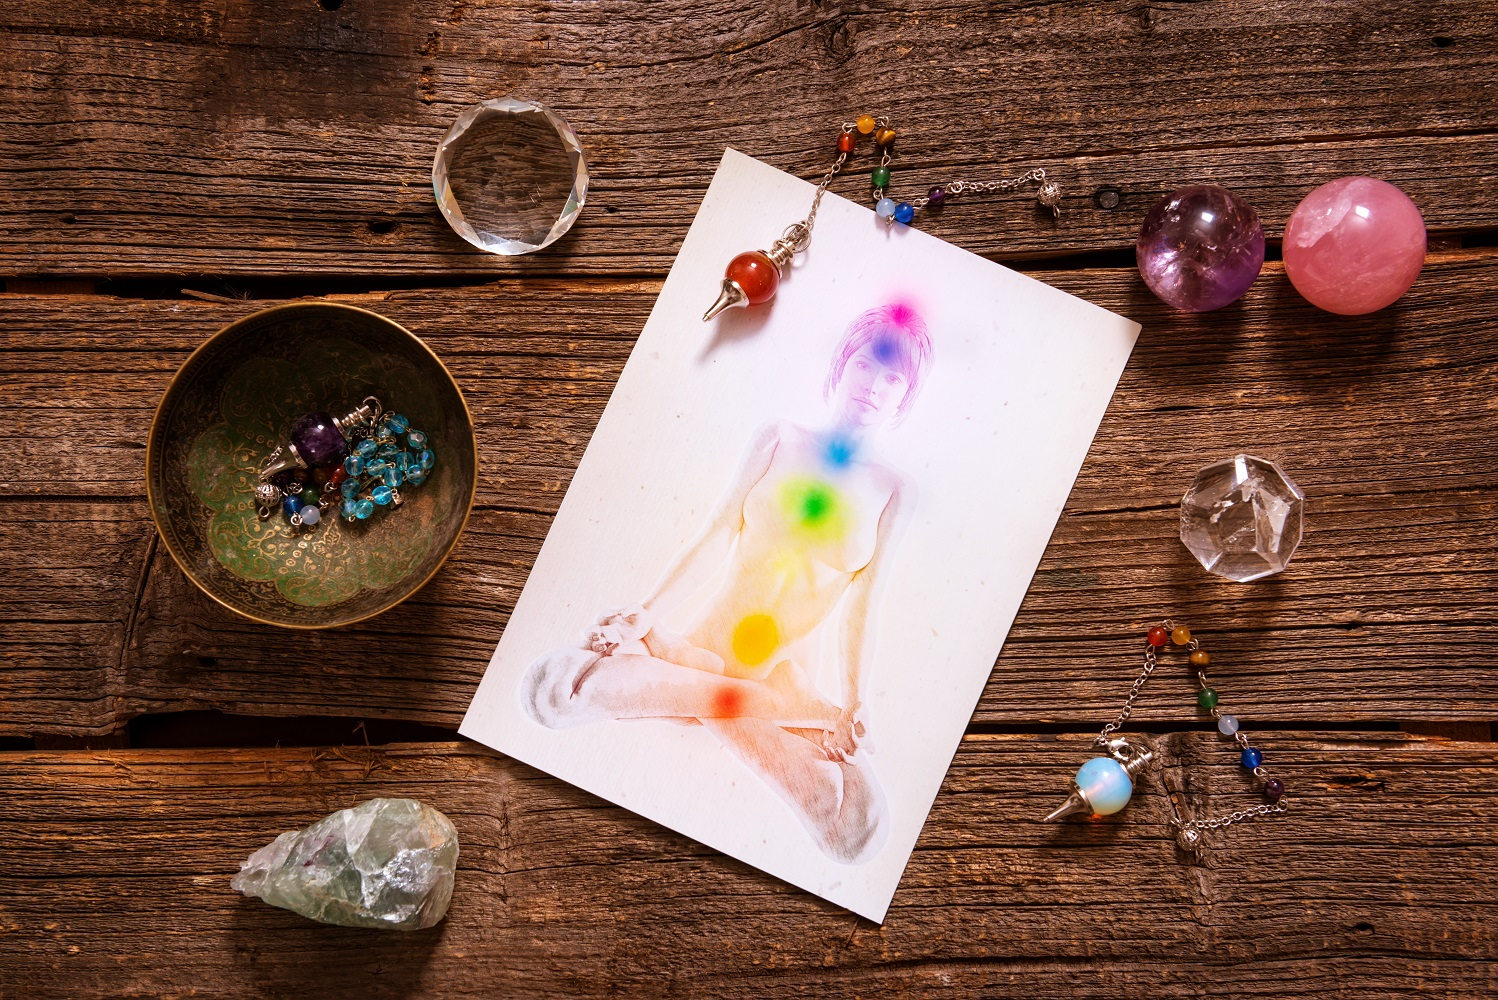 lightworker manifesting your power with healing stones, rocks and quartz crystals